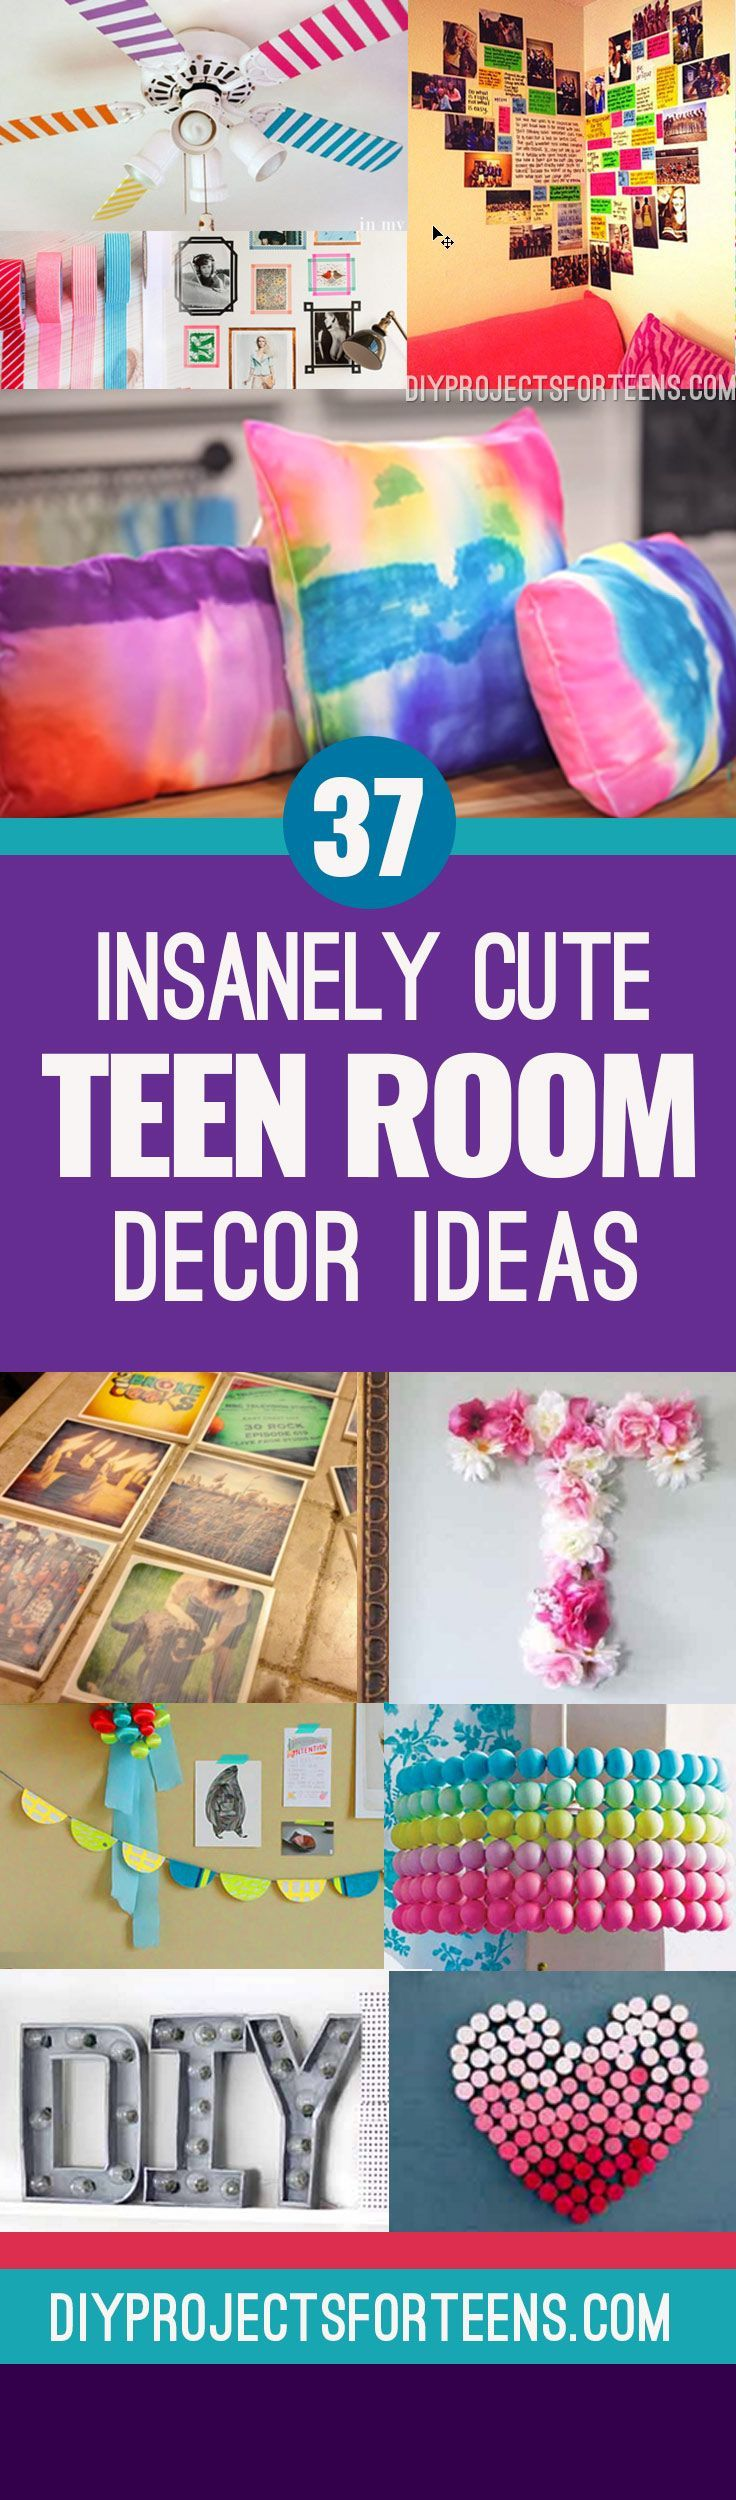 37 Insanely Cute Teen Bedroom Ideas for DIY Decor | Diy room decor ...